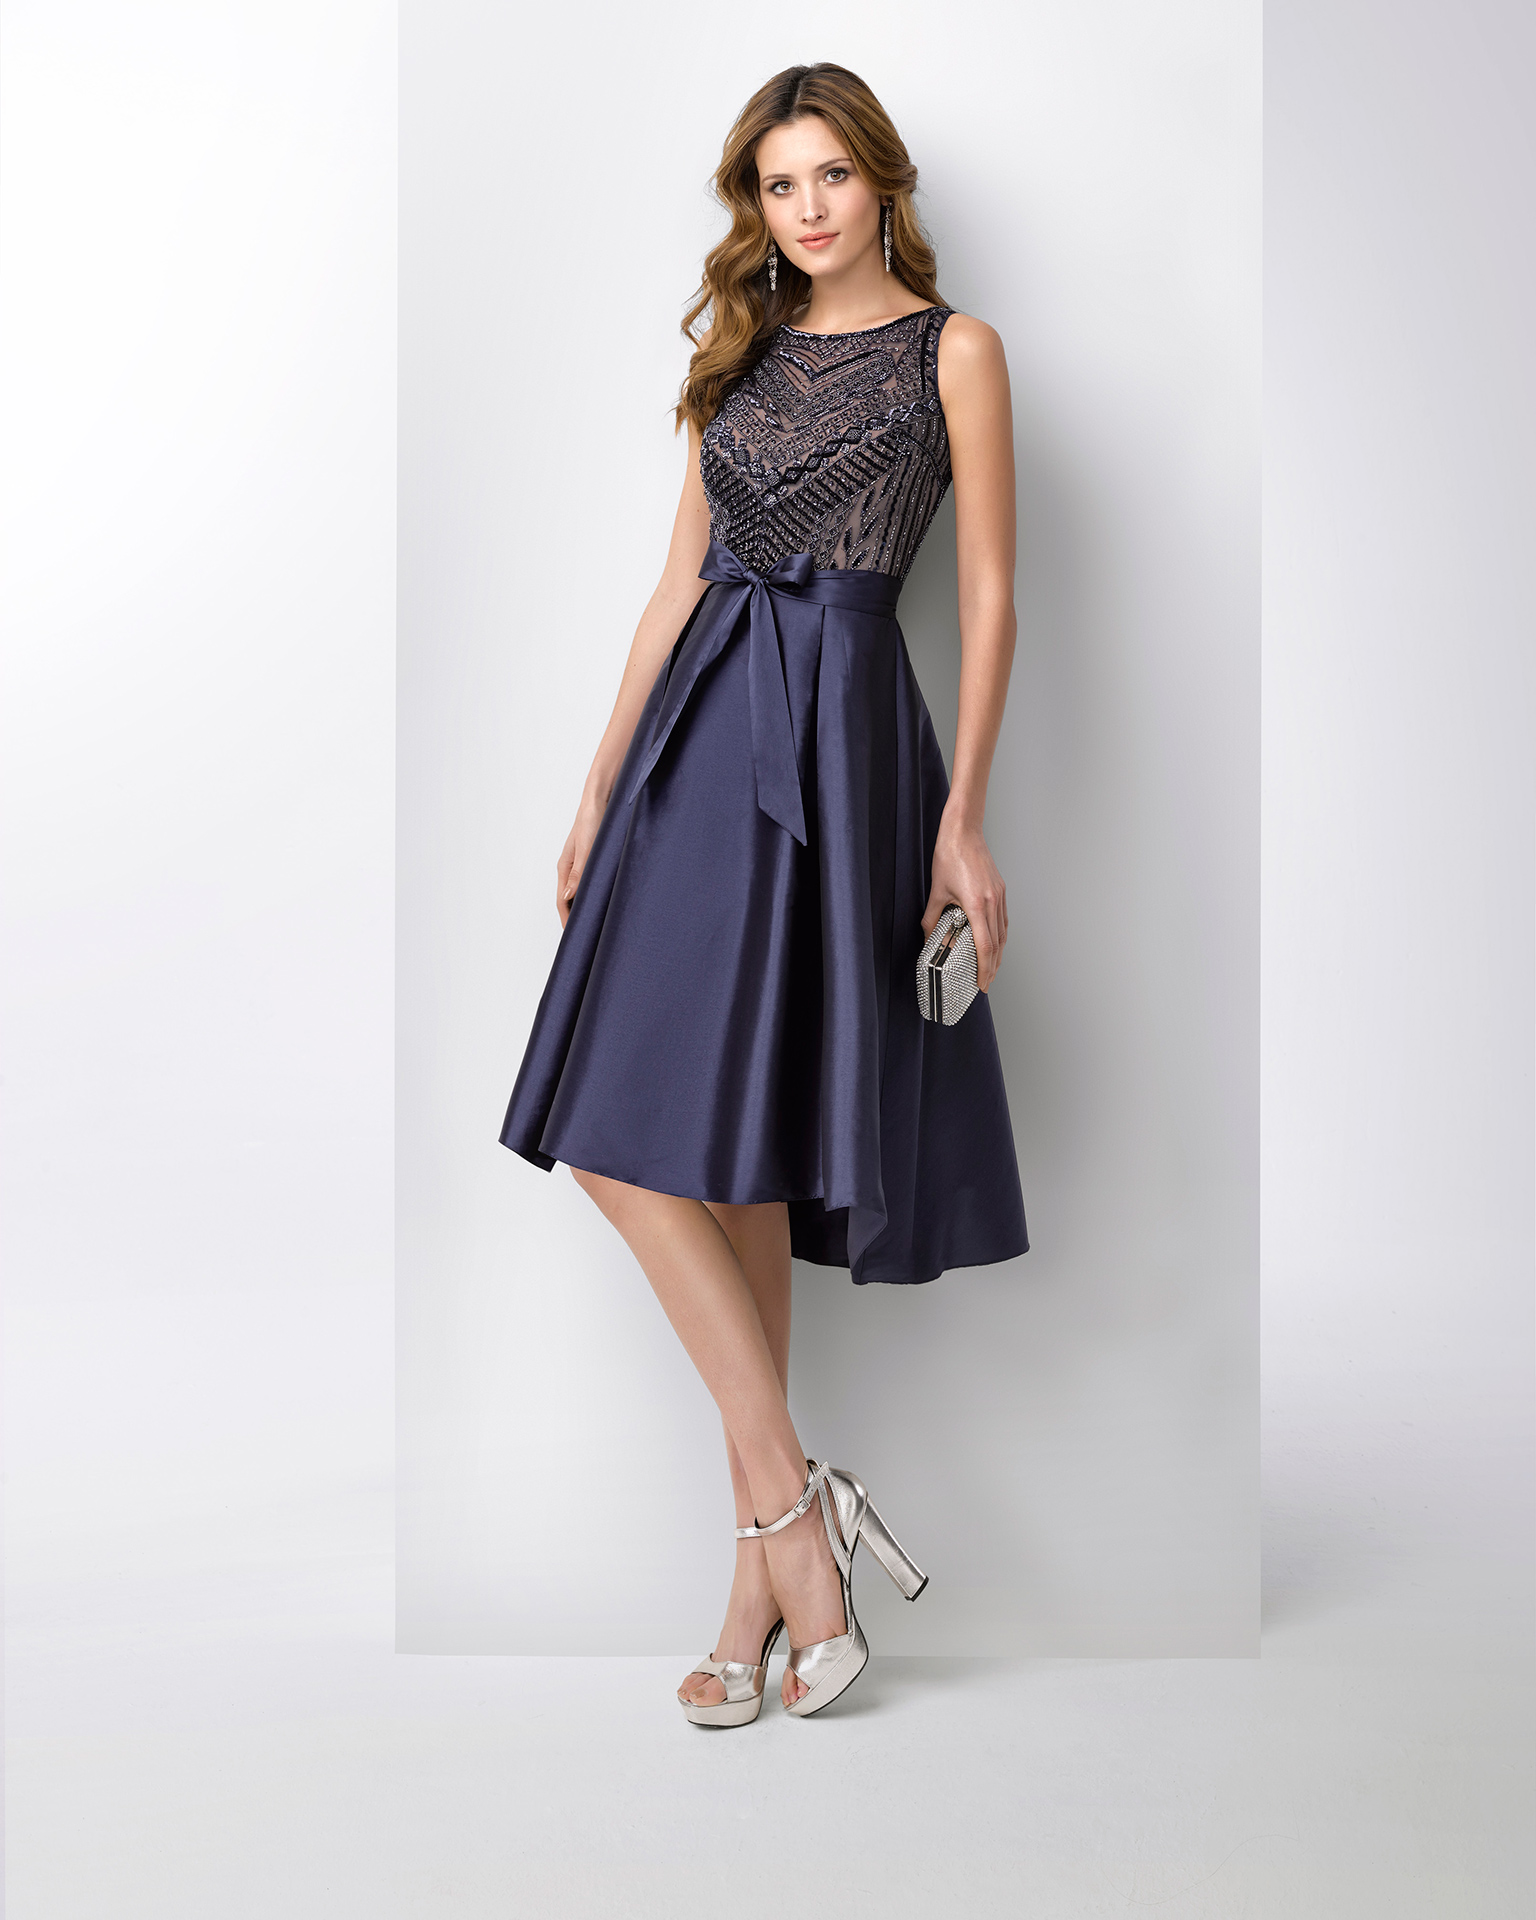 Short taffeta cocktail dress with beaded bodice. Available in navy blue and silver. 2018 FIESTA AIRE BARCELONA Collection.